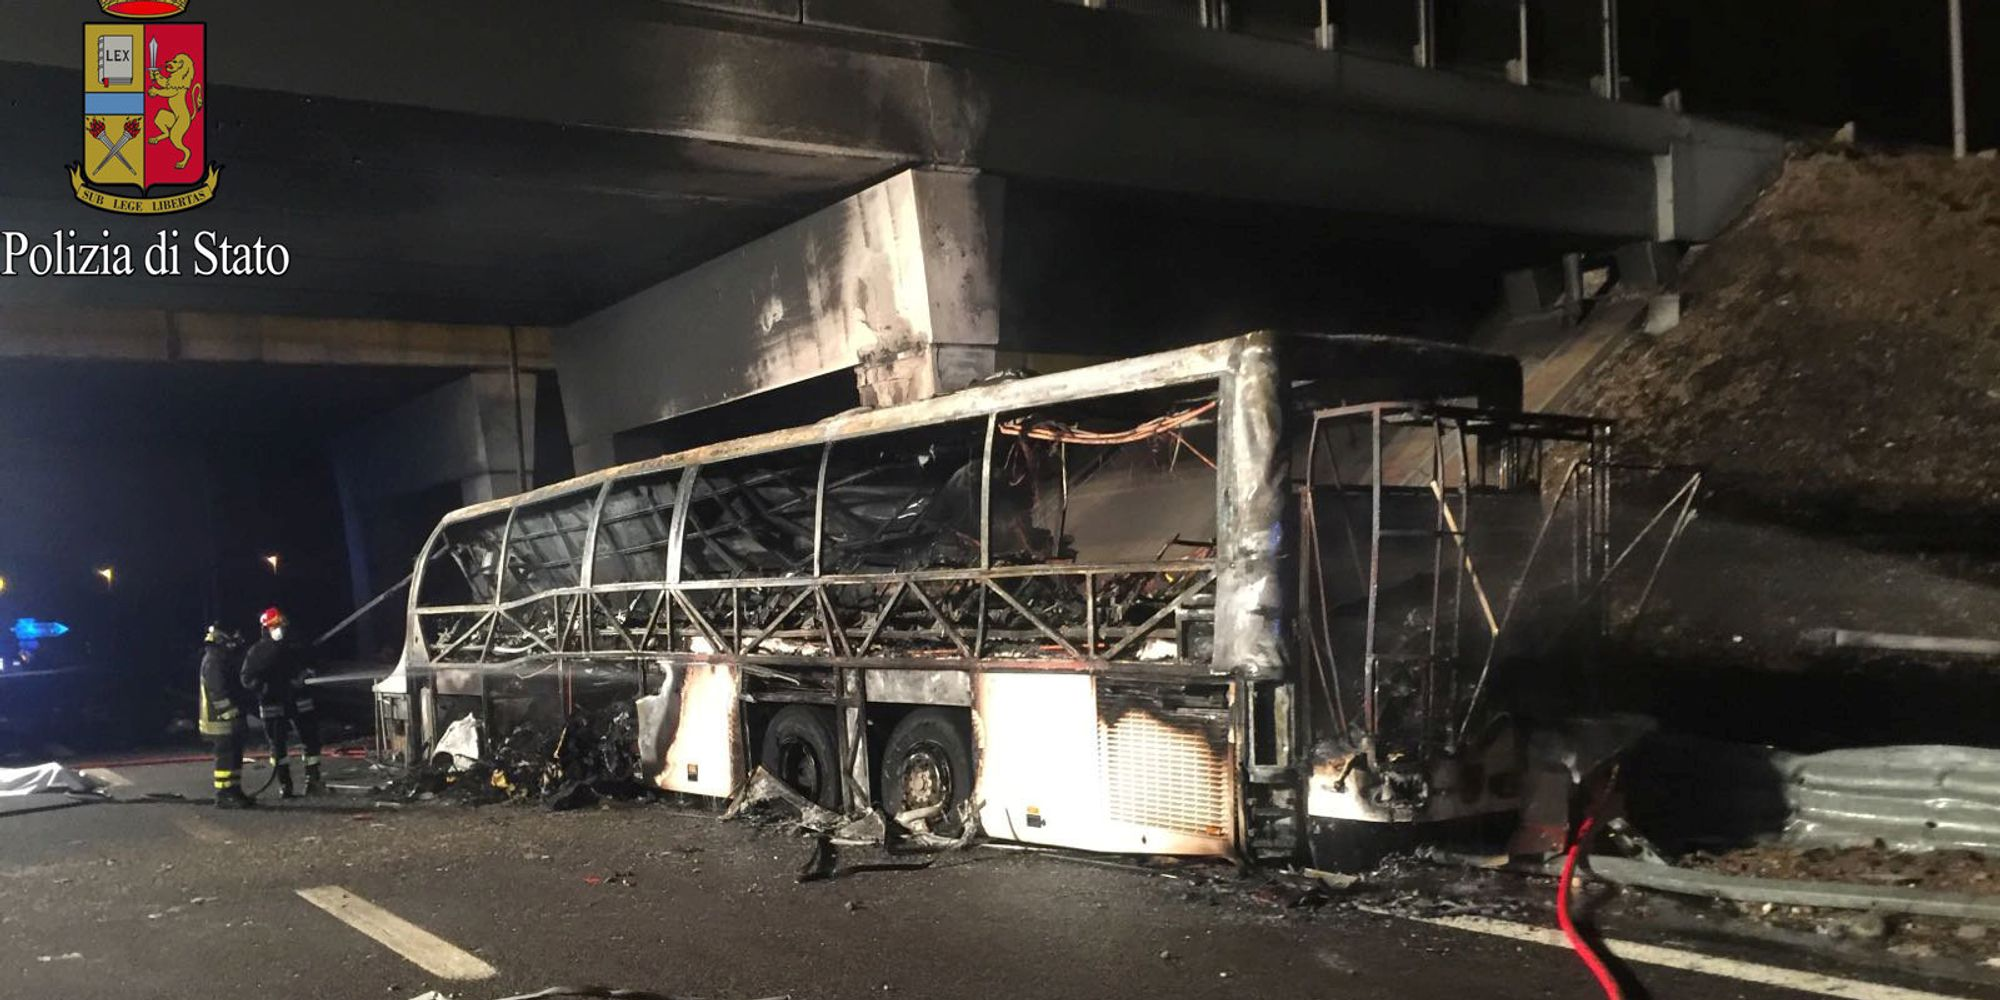 16 Killed After Bus Carrying Students Bursts Into Flames In Italy